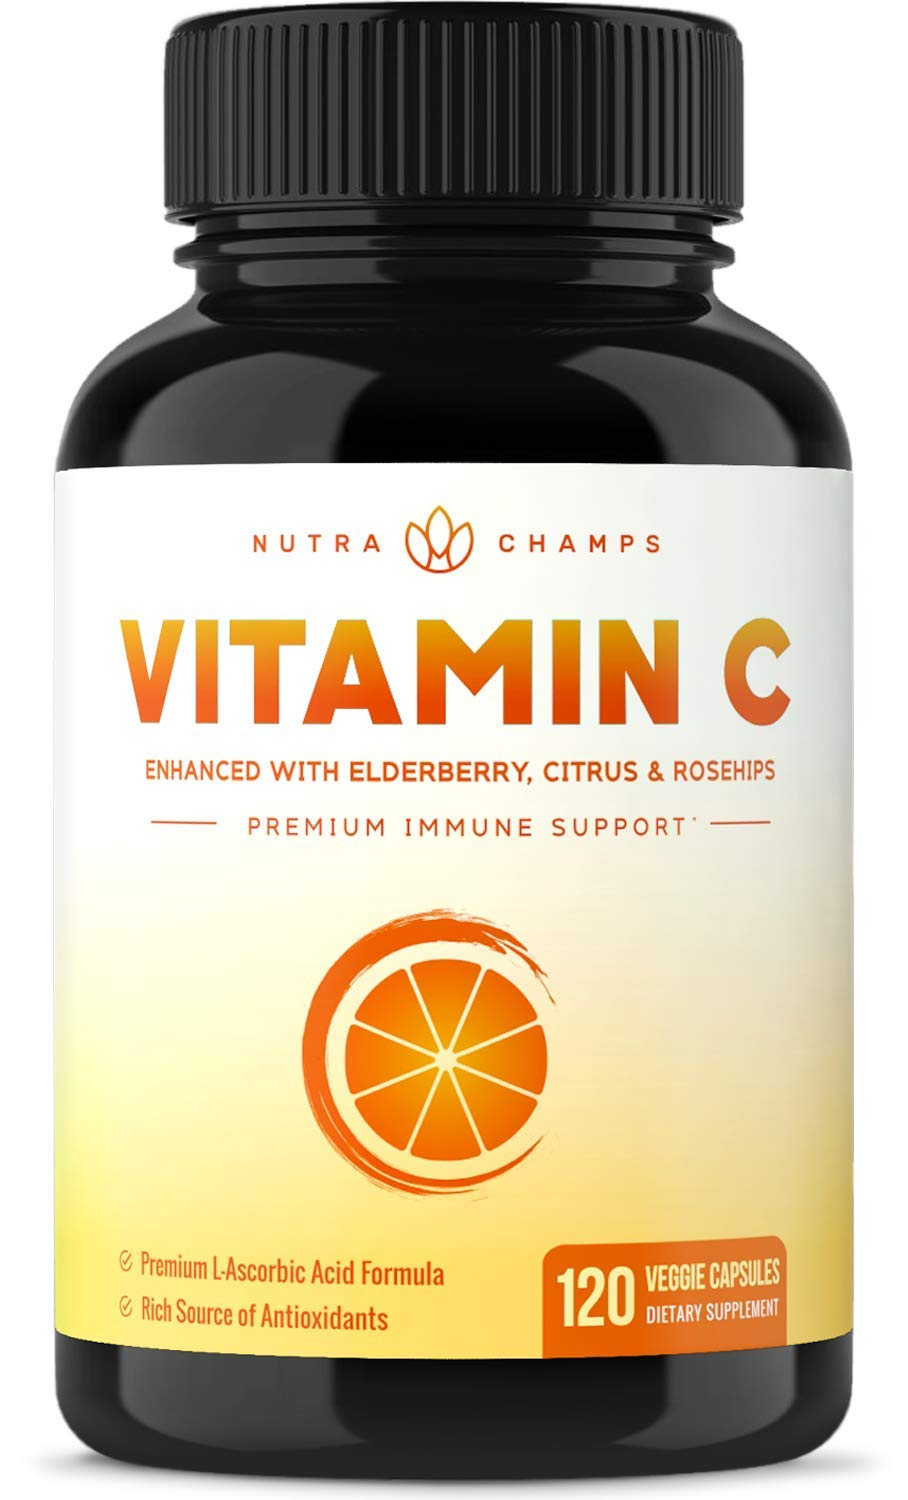 Premium Vitamin C 1000mg with Elderberry, Citrus Bioflavonoids & Rose Hips - 120 Capsules Vegan, Non-GMO Antioxidant Supplement for Immune Health & Collagen Production, 500mg Powder Pills by NutraChamps